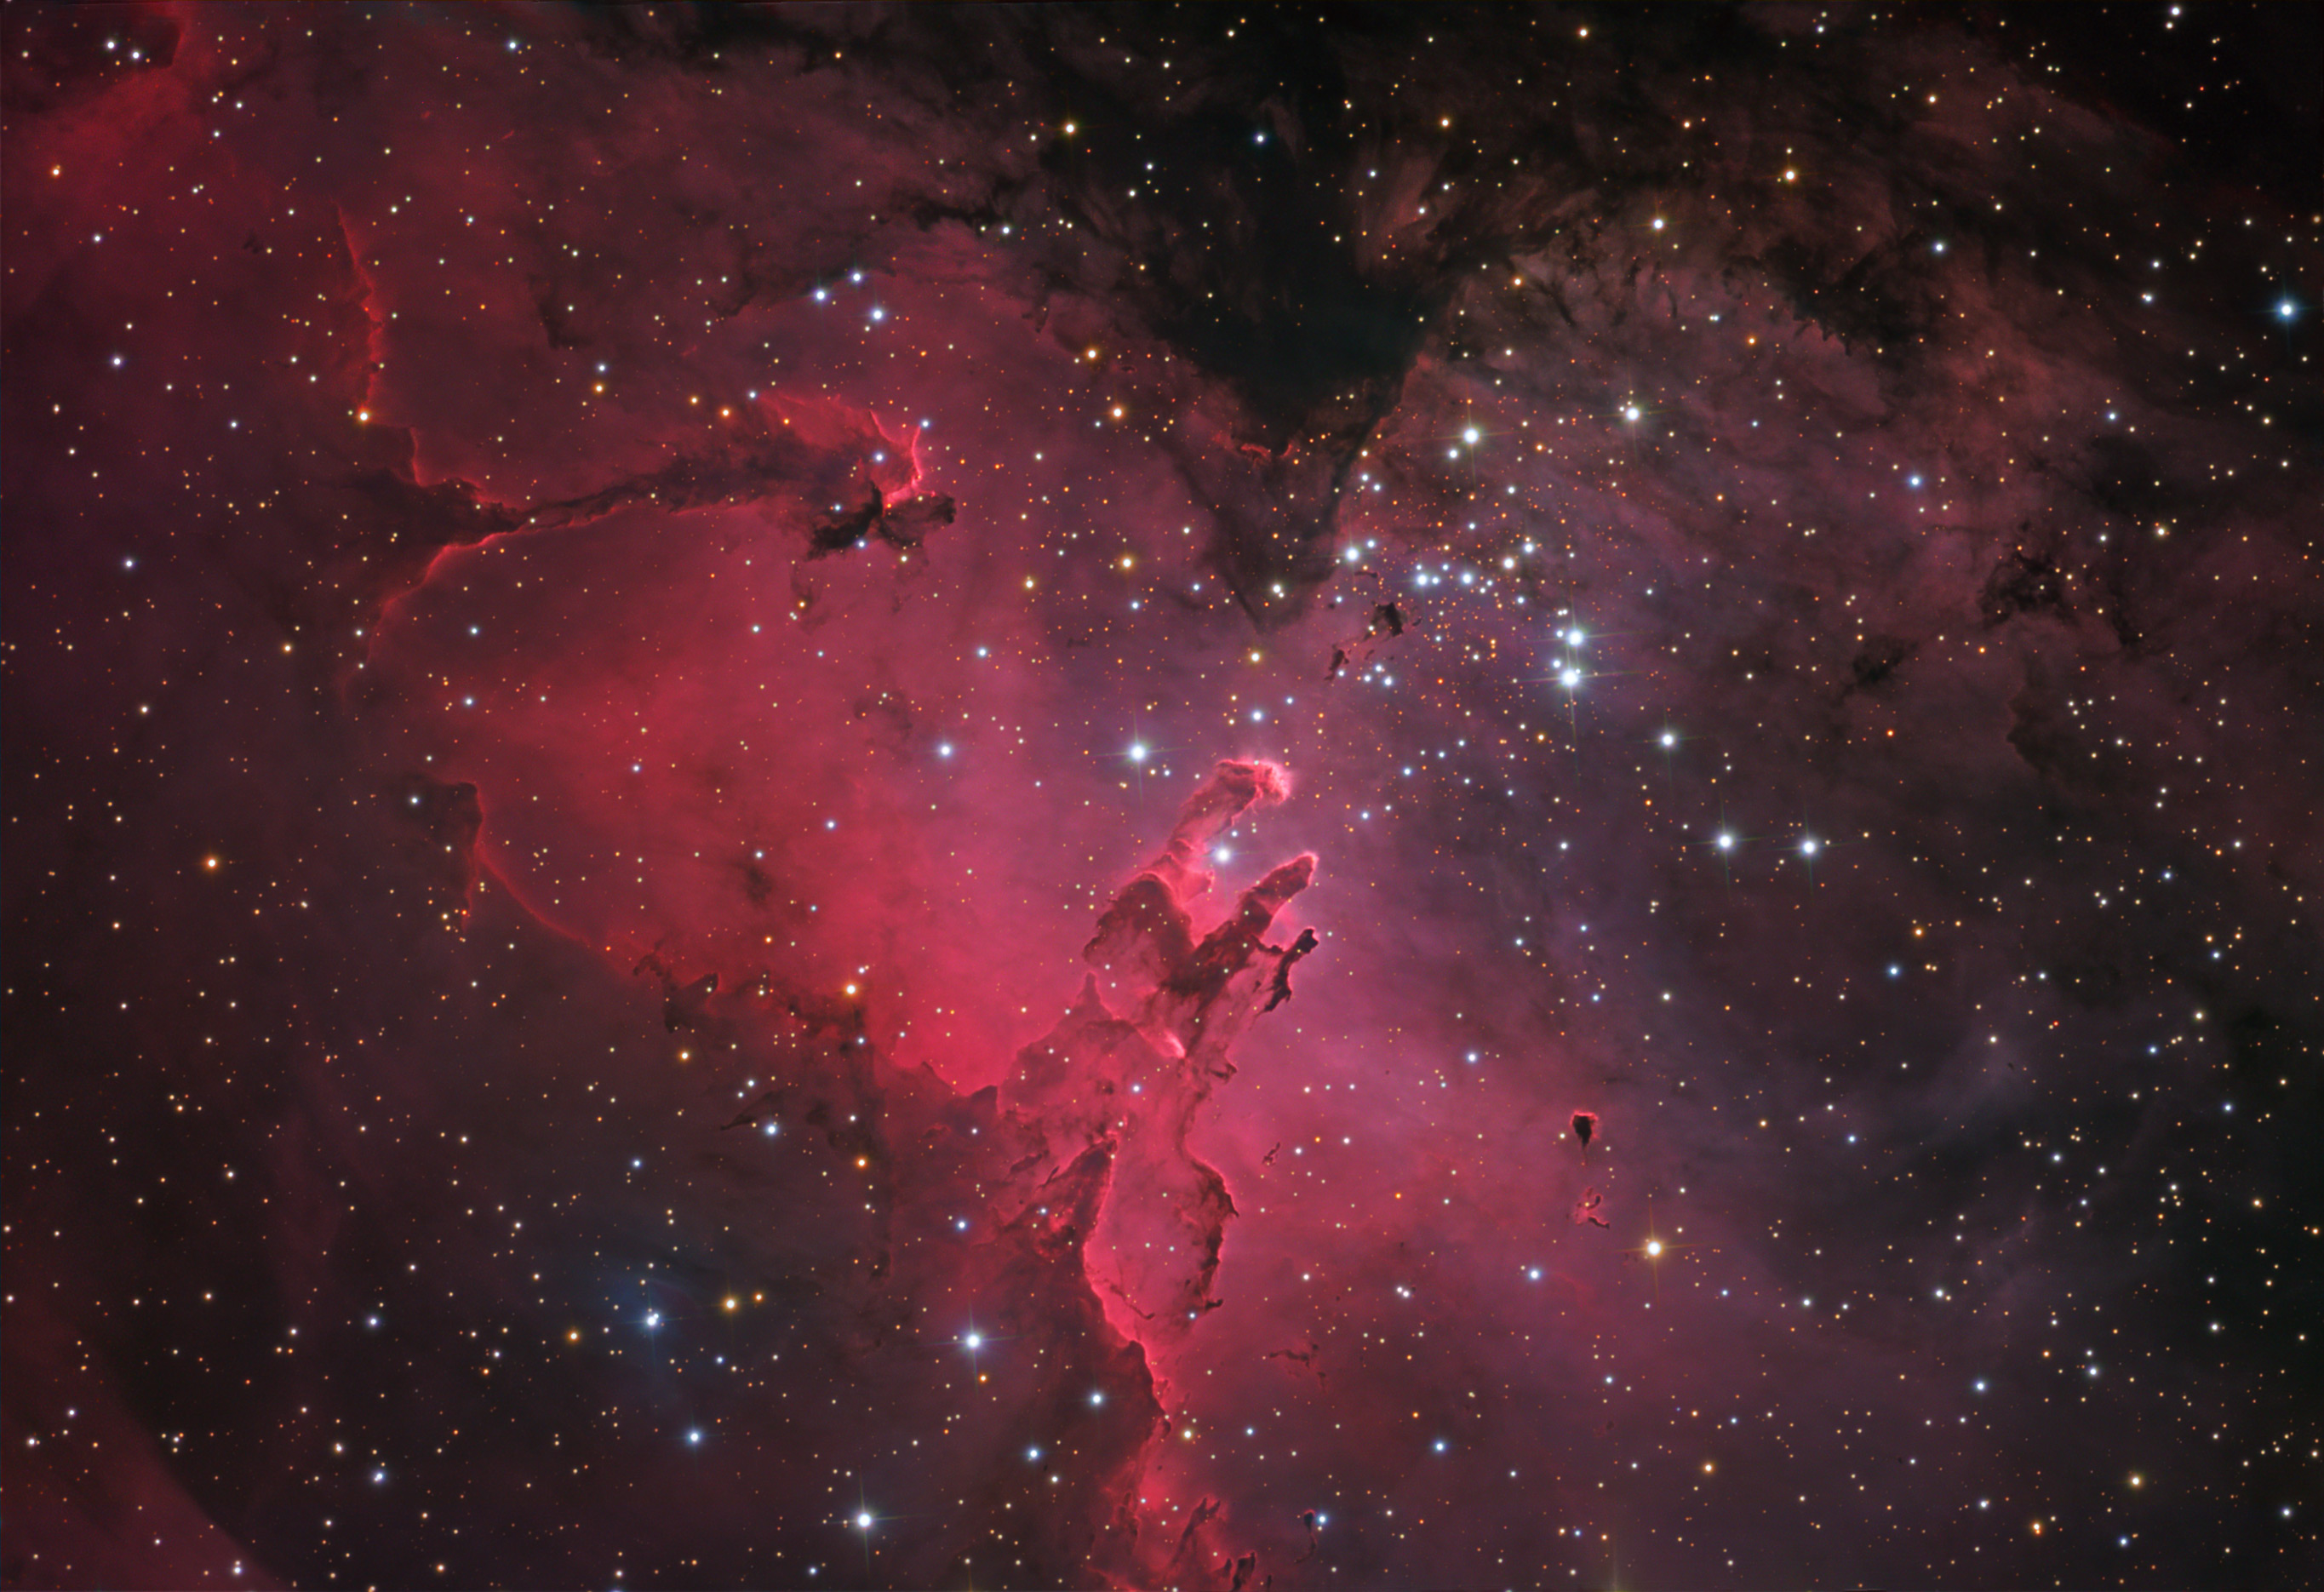 Apod 2008 july 19 m16 and the eagle nebula for Nebula material